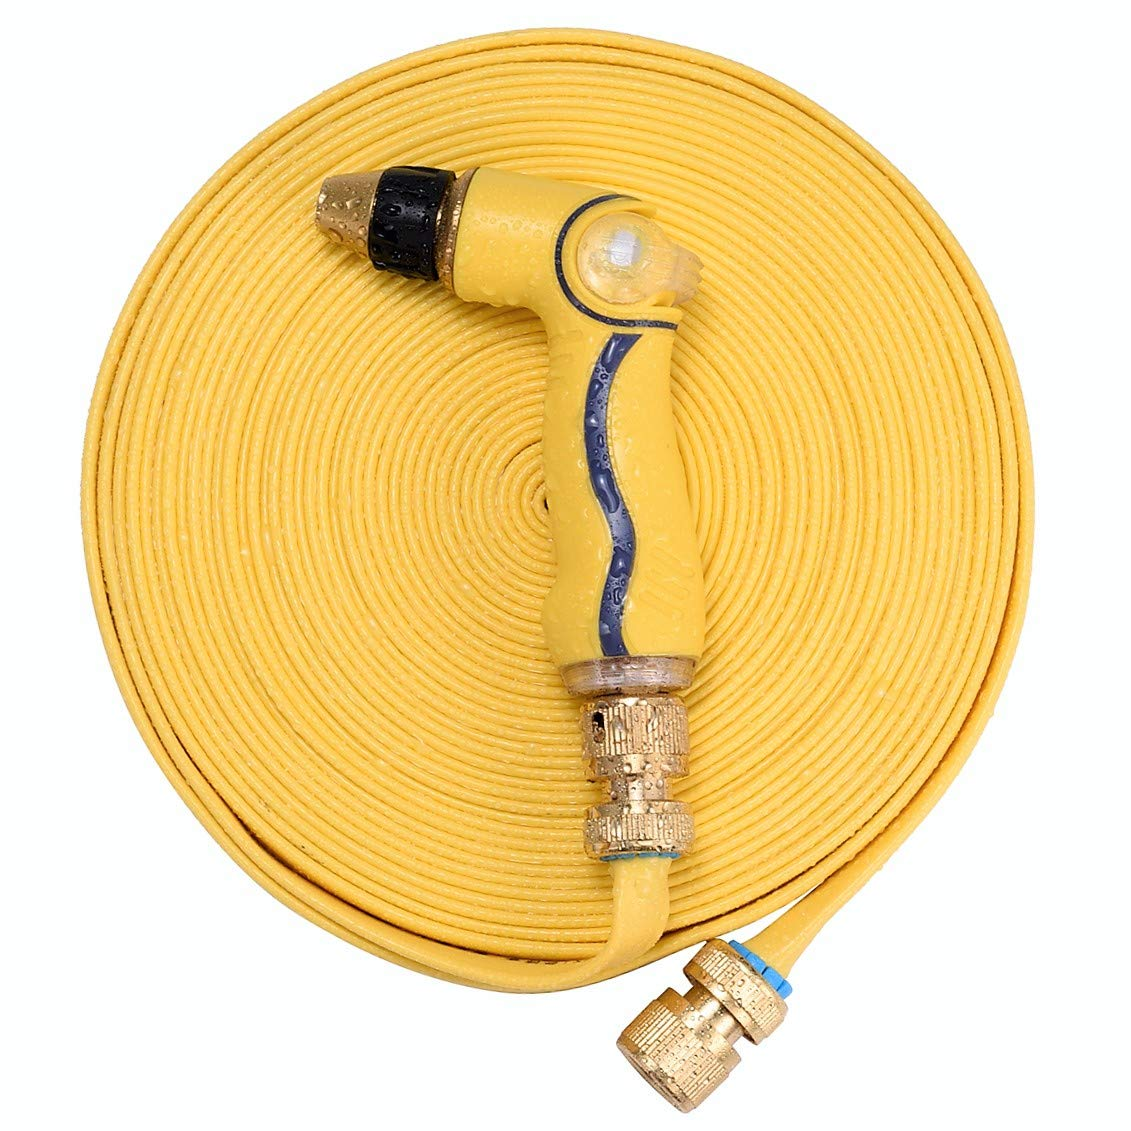 "50ft Garden Hose with Spray Nozzle, Solid Brass Fittings - 3/4"" Connector, Special Quick Disconnect Fittings(Non-Standard), Faucet Adapter and Rubber Washers Included (Yellow)"